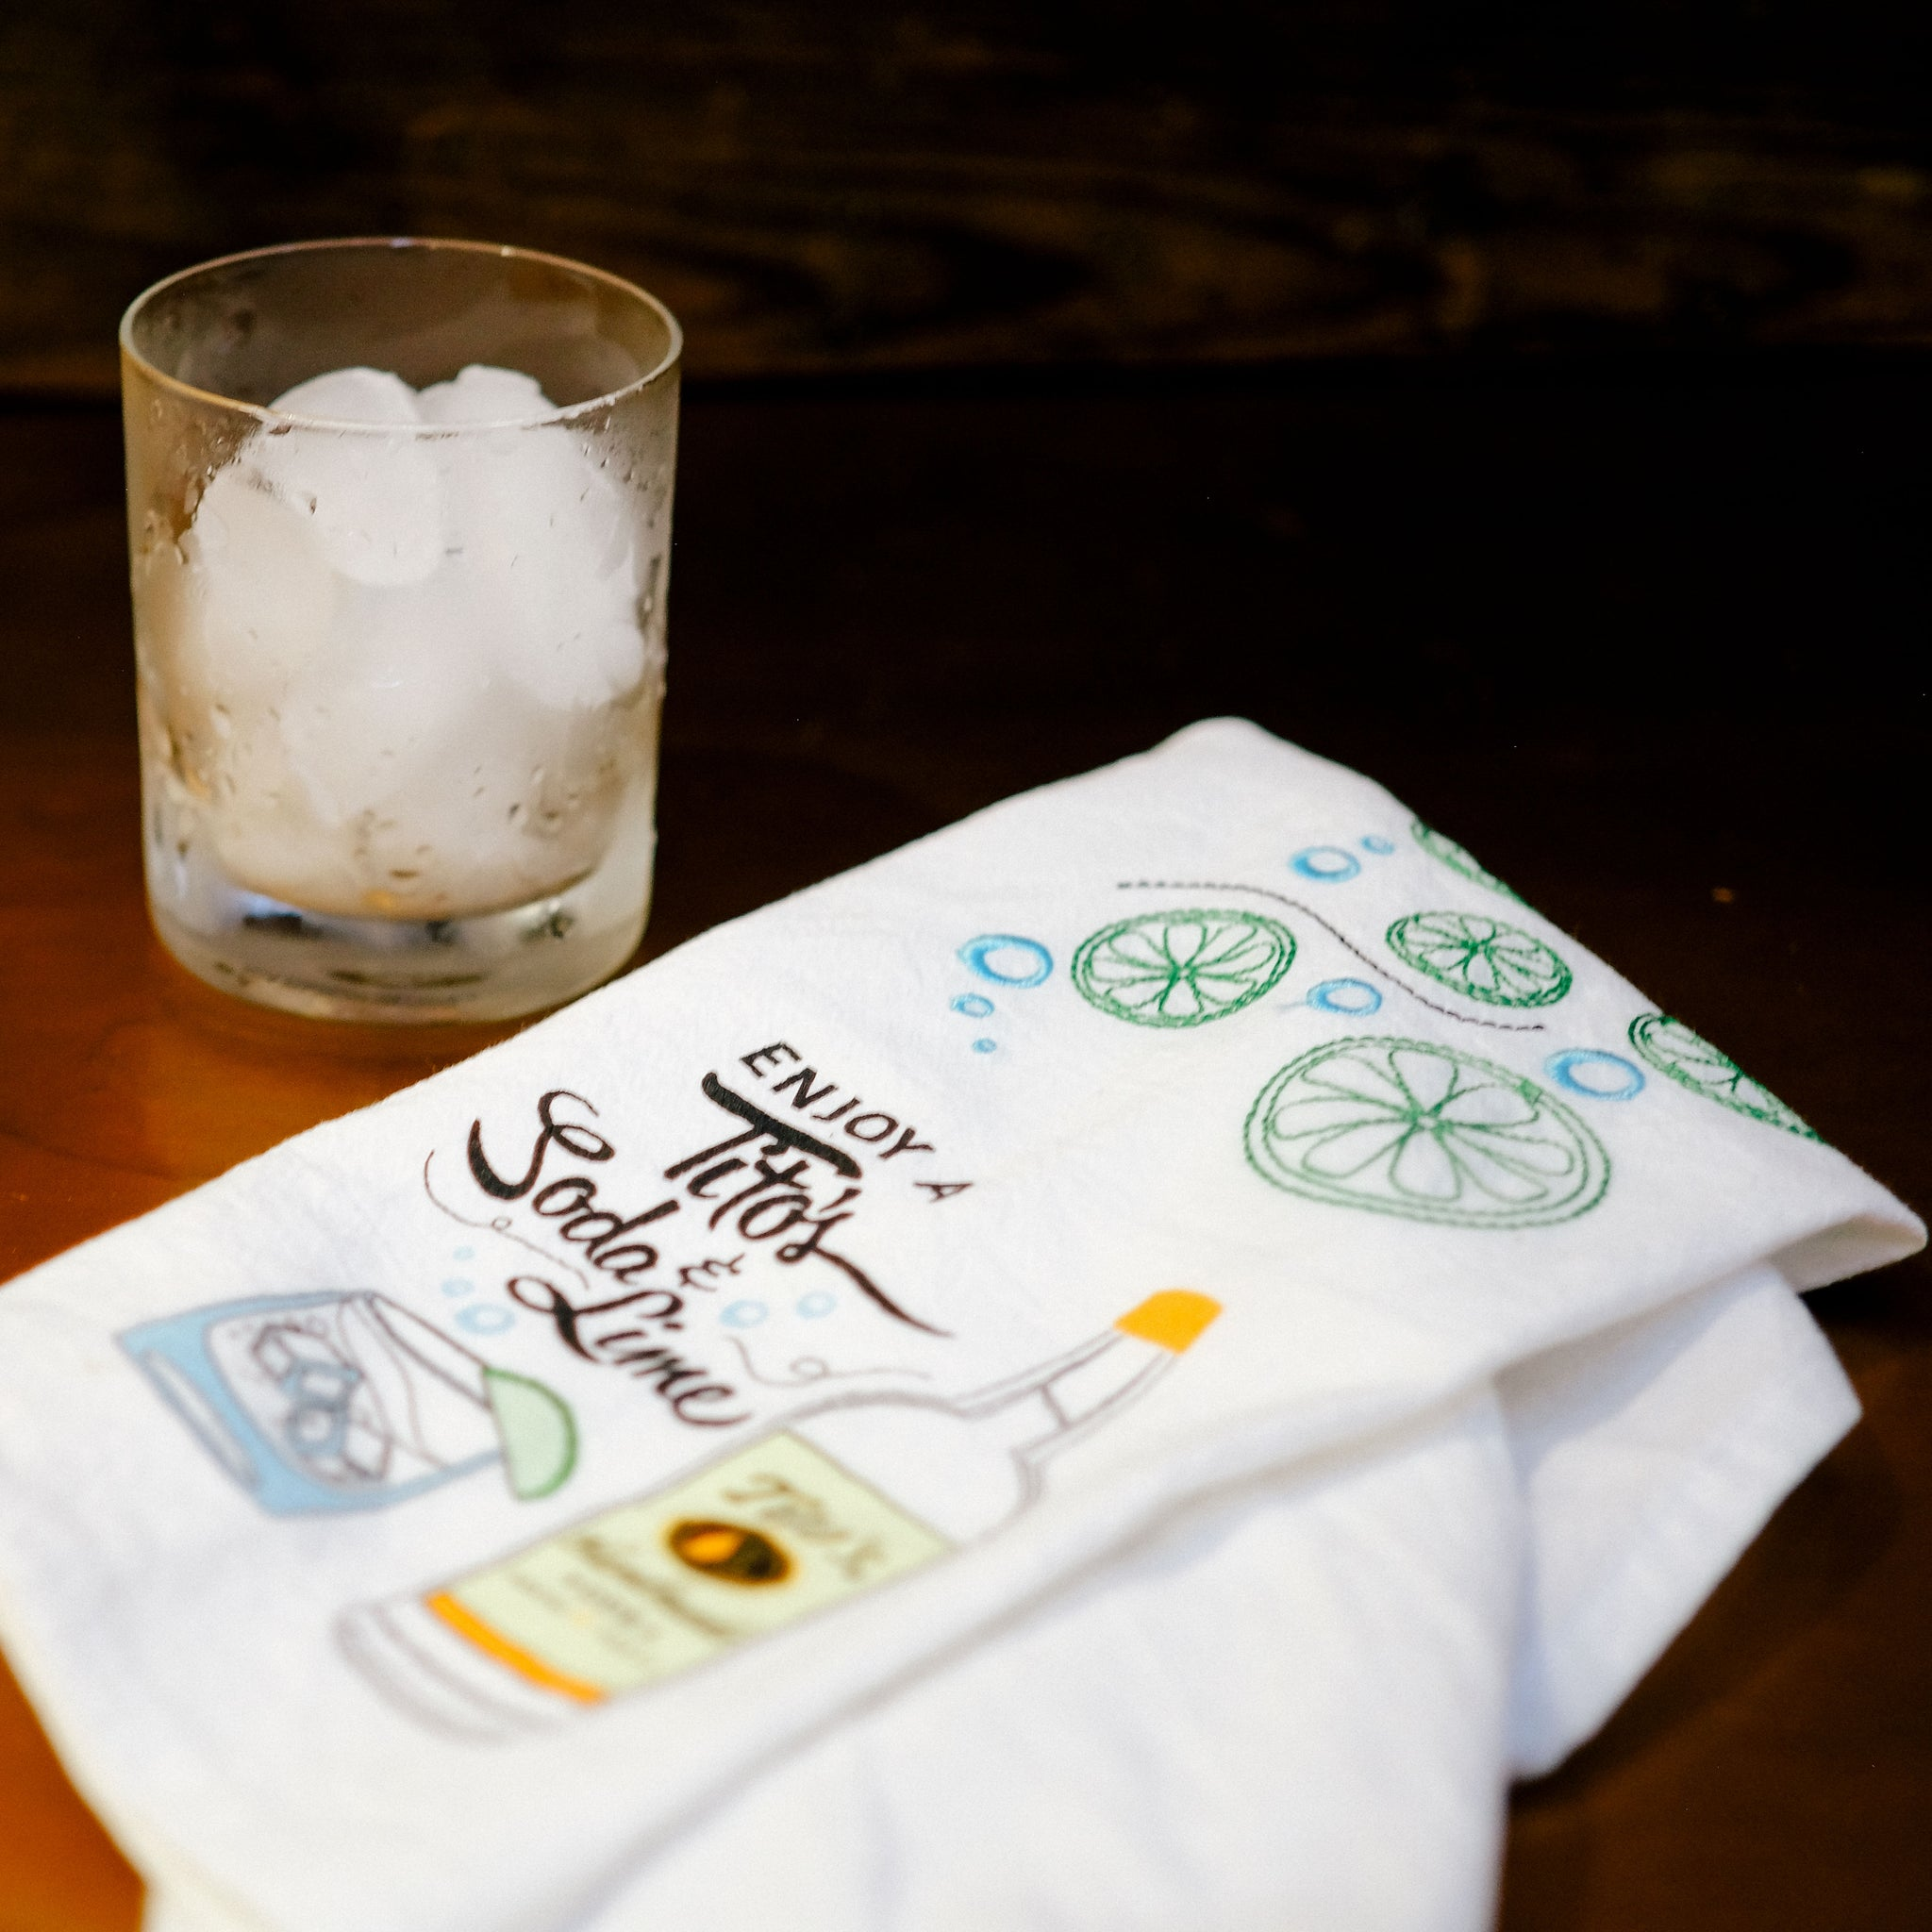 Tea towel and cocktail sitting on a brown table